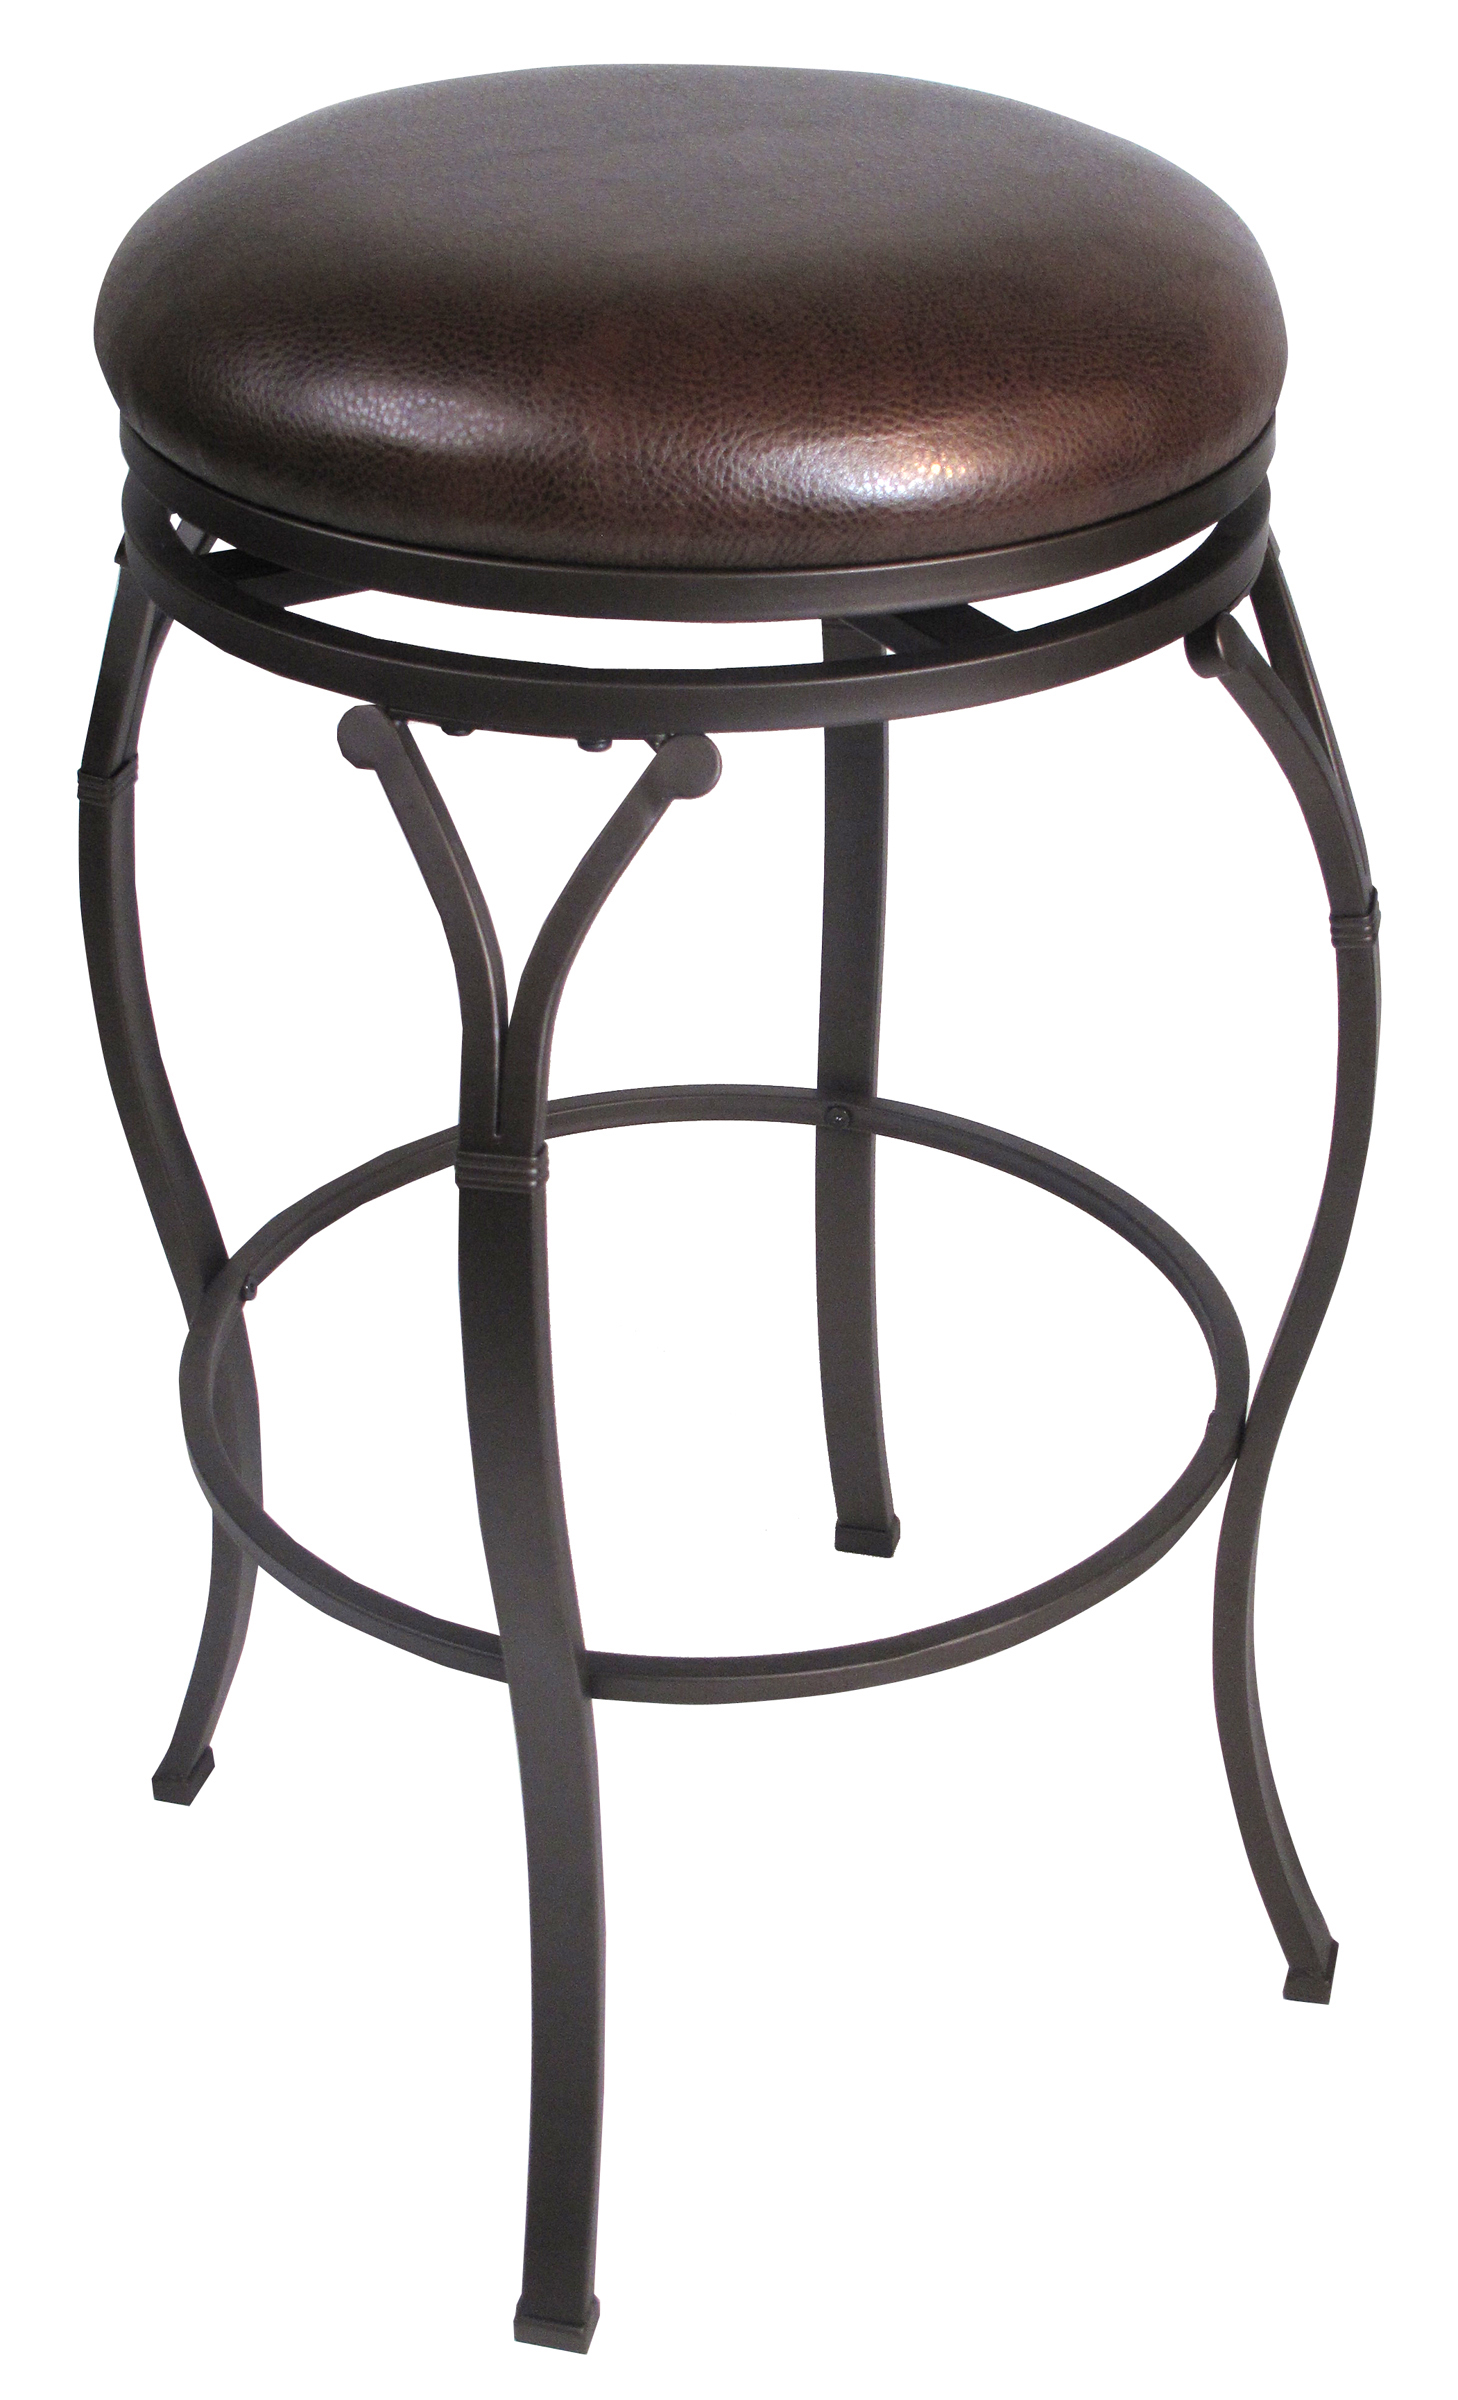 black hillsdale stools p stool swivel backless textured furniture bar ottomans kelford